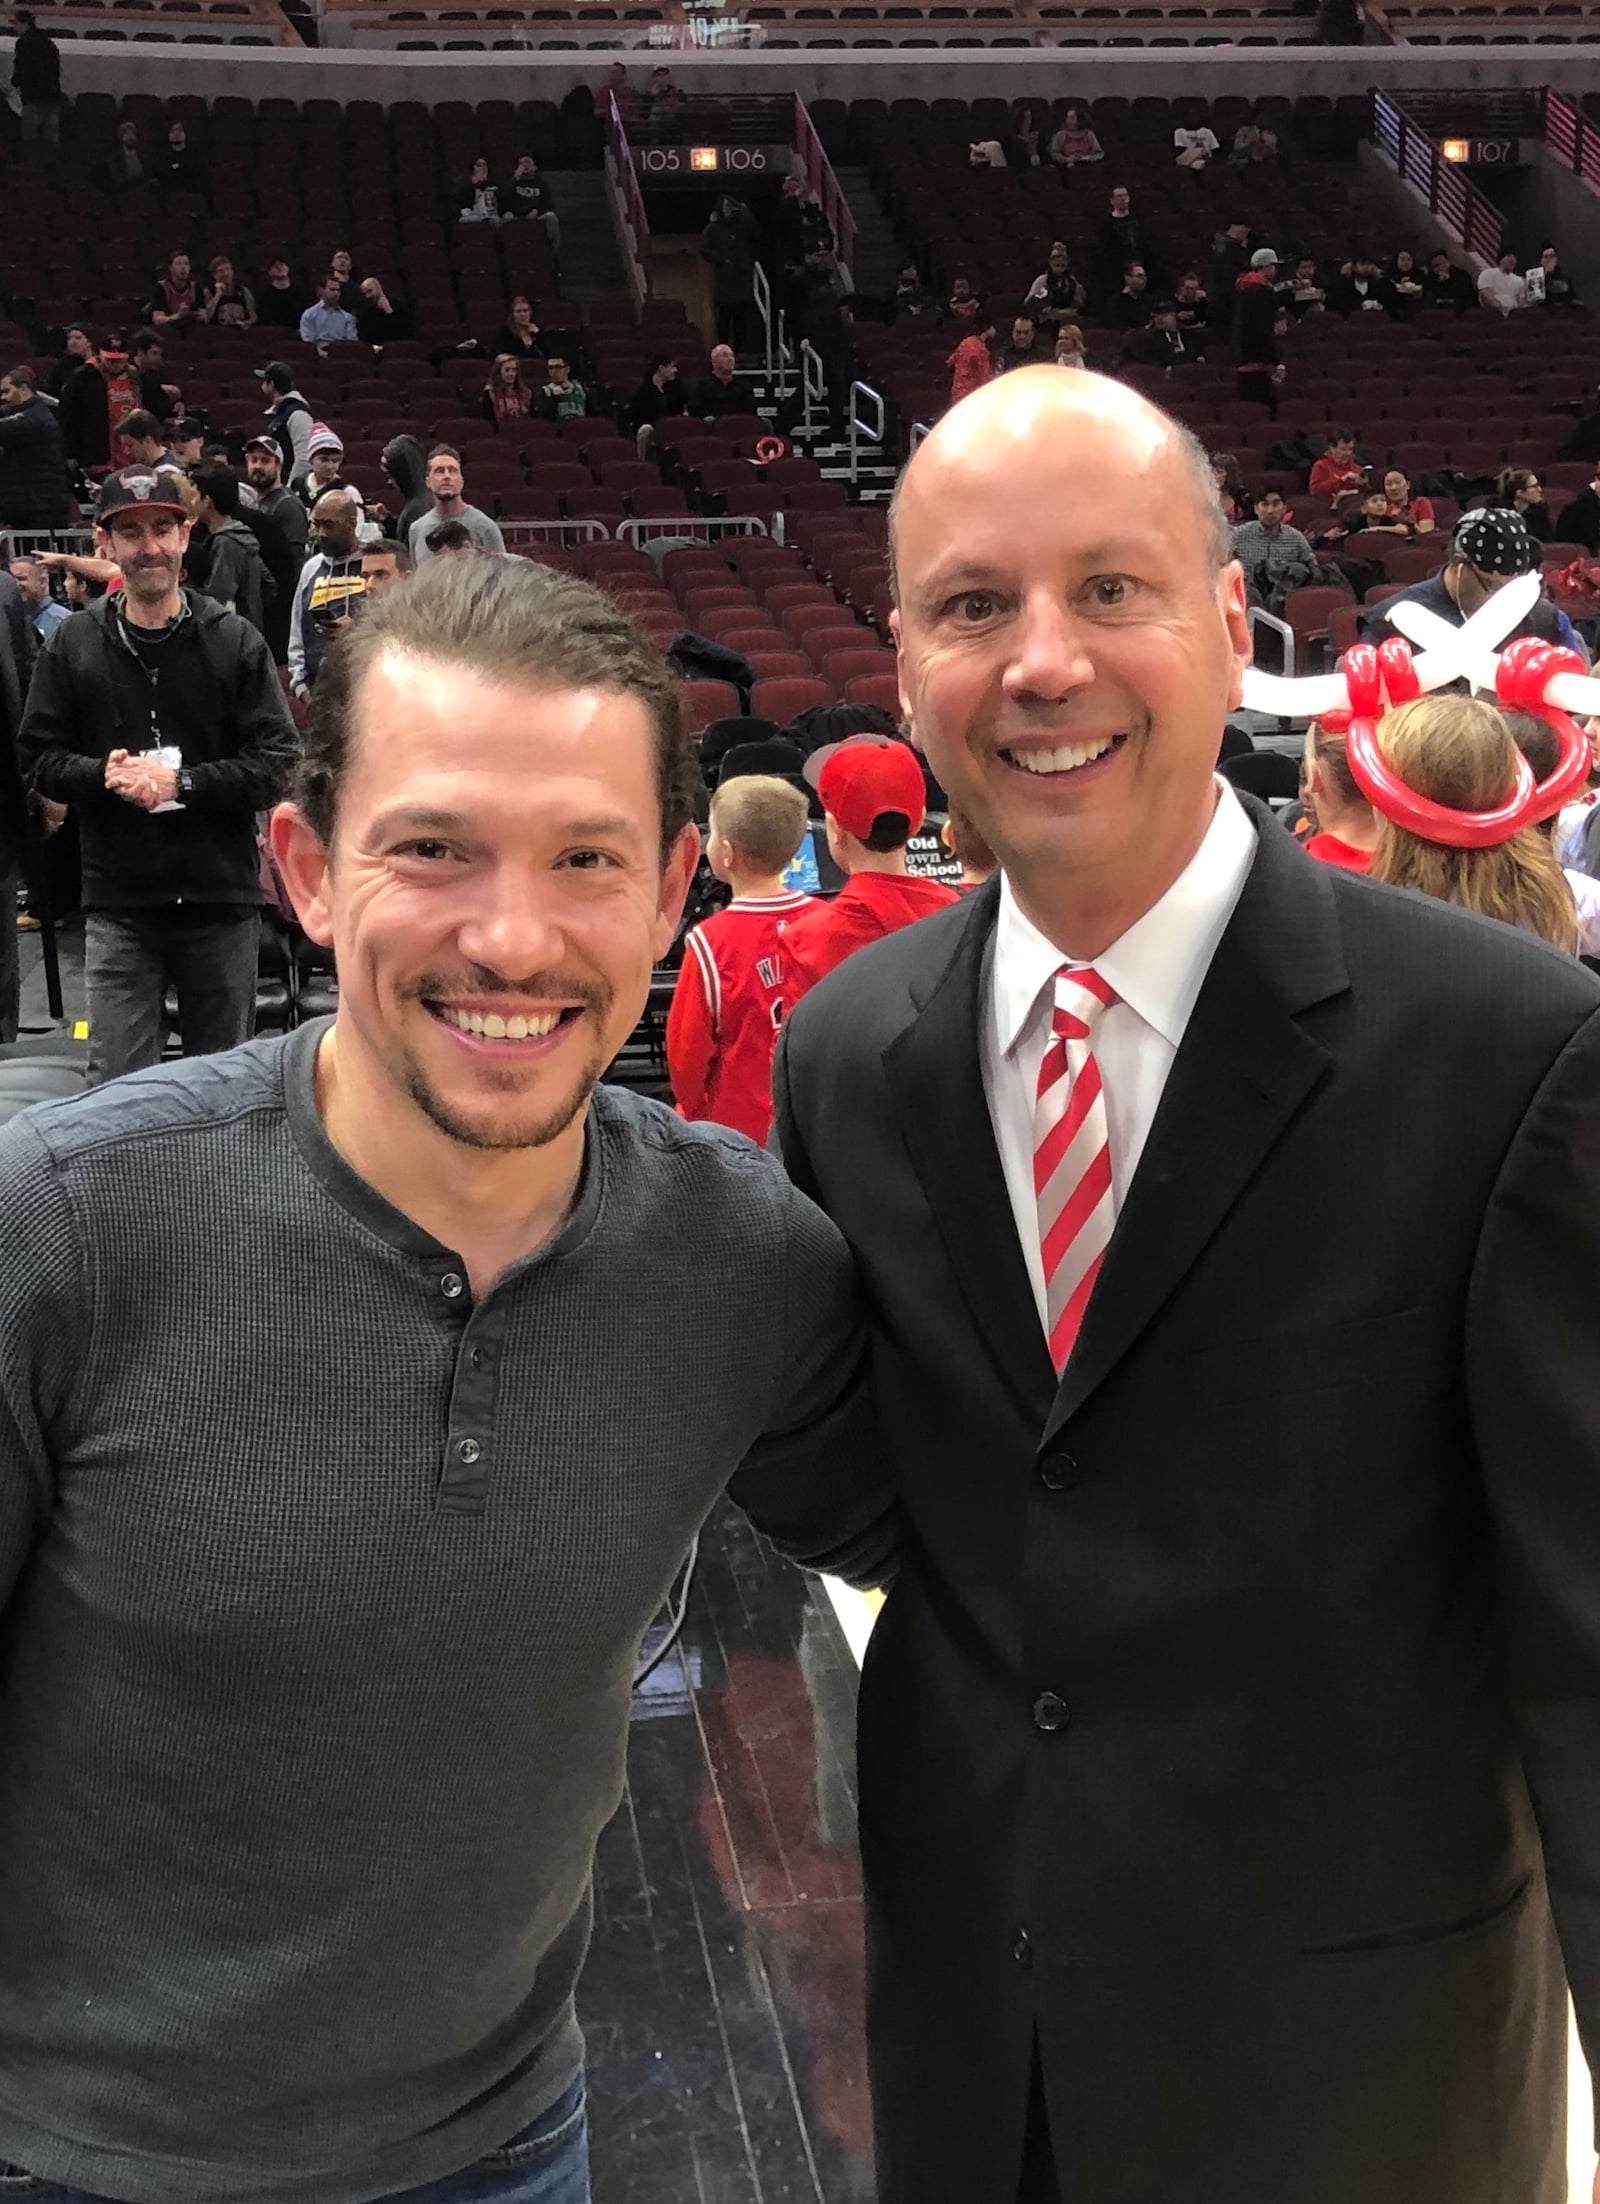 Miguel Cervantes from Hamilton poses with Chuck Swirsky